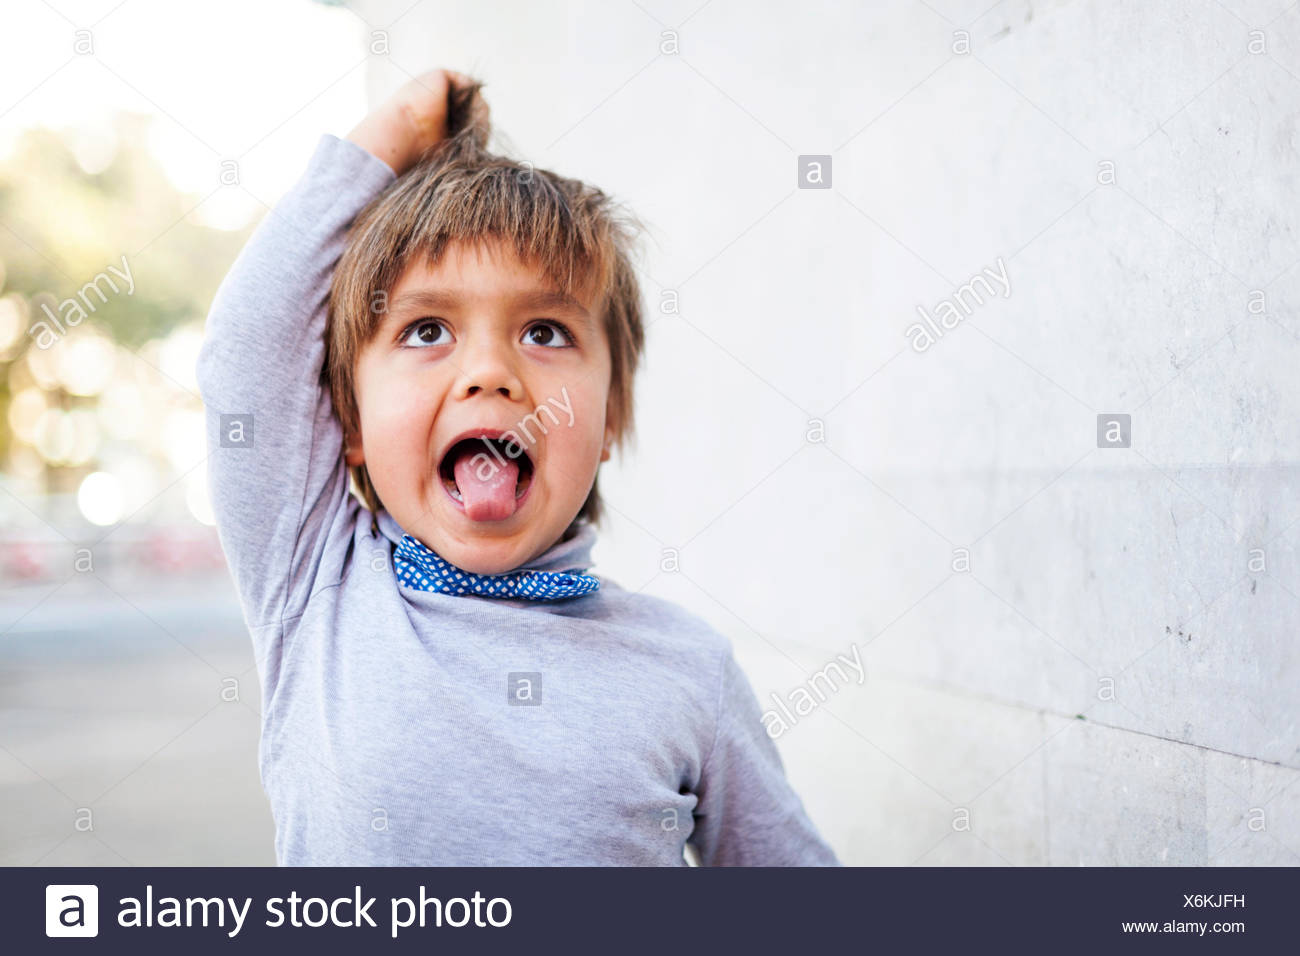 Little boy sticking out tongue while pulling funny face - Stock Image